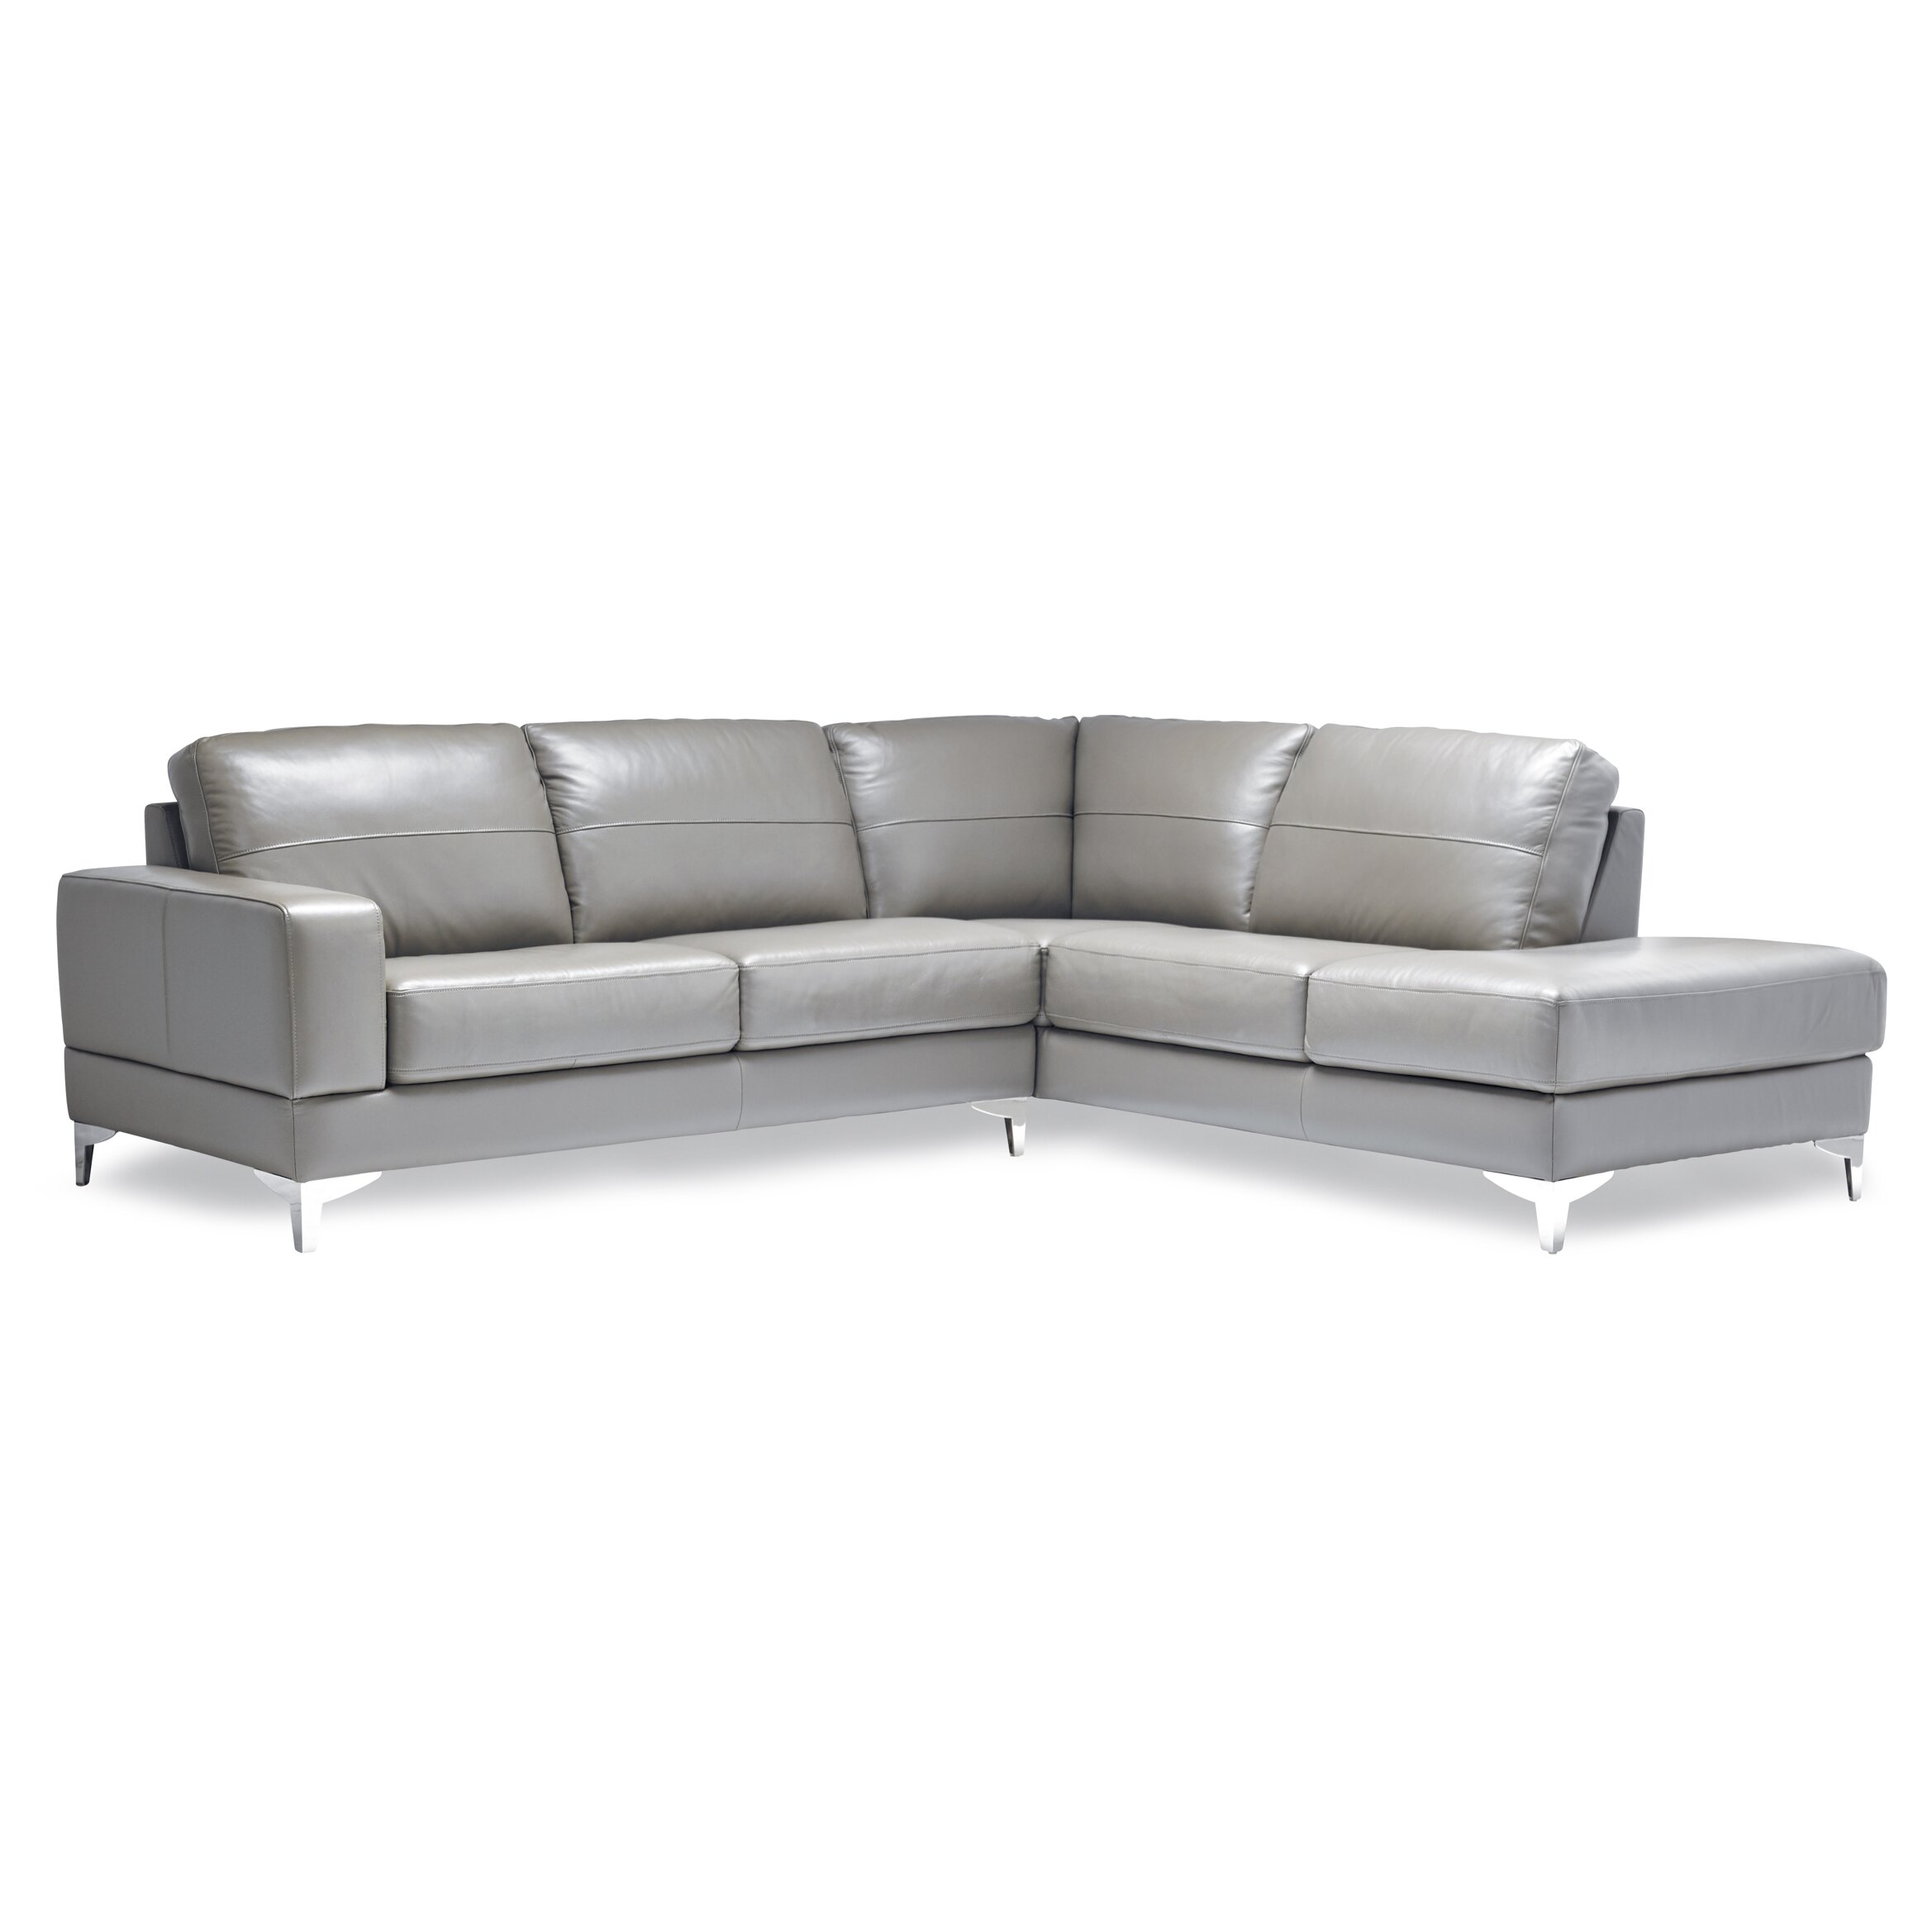 sofas to go finch leather sectional reviews wayfair. Black Bedroom Furniture Sets. Home Design Ideas